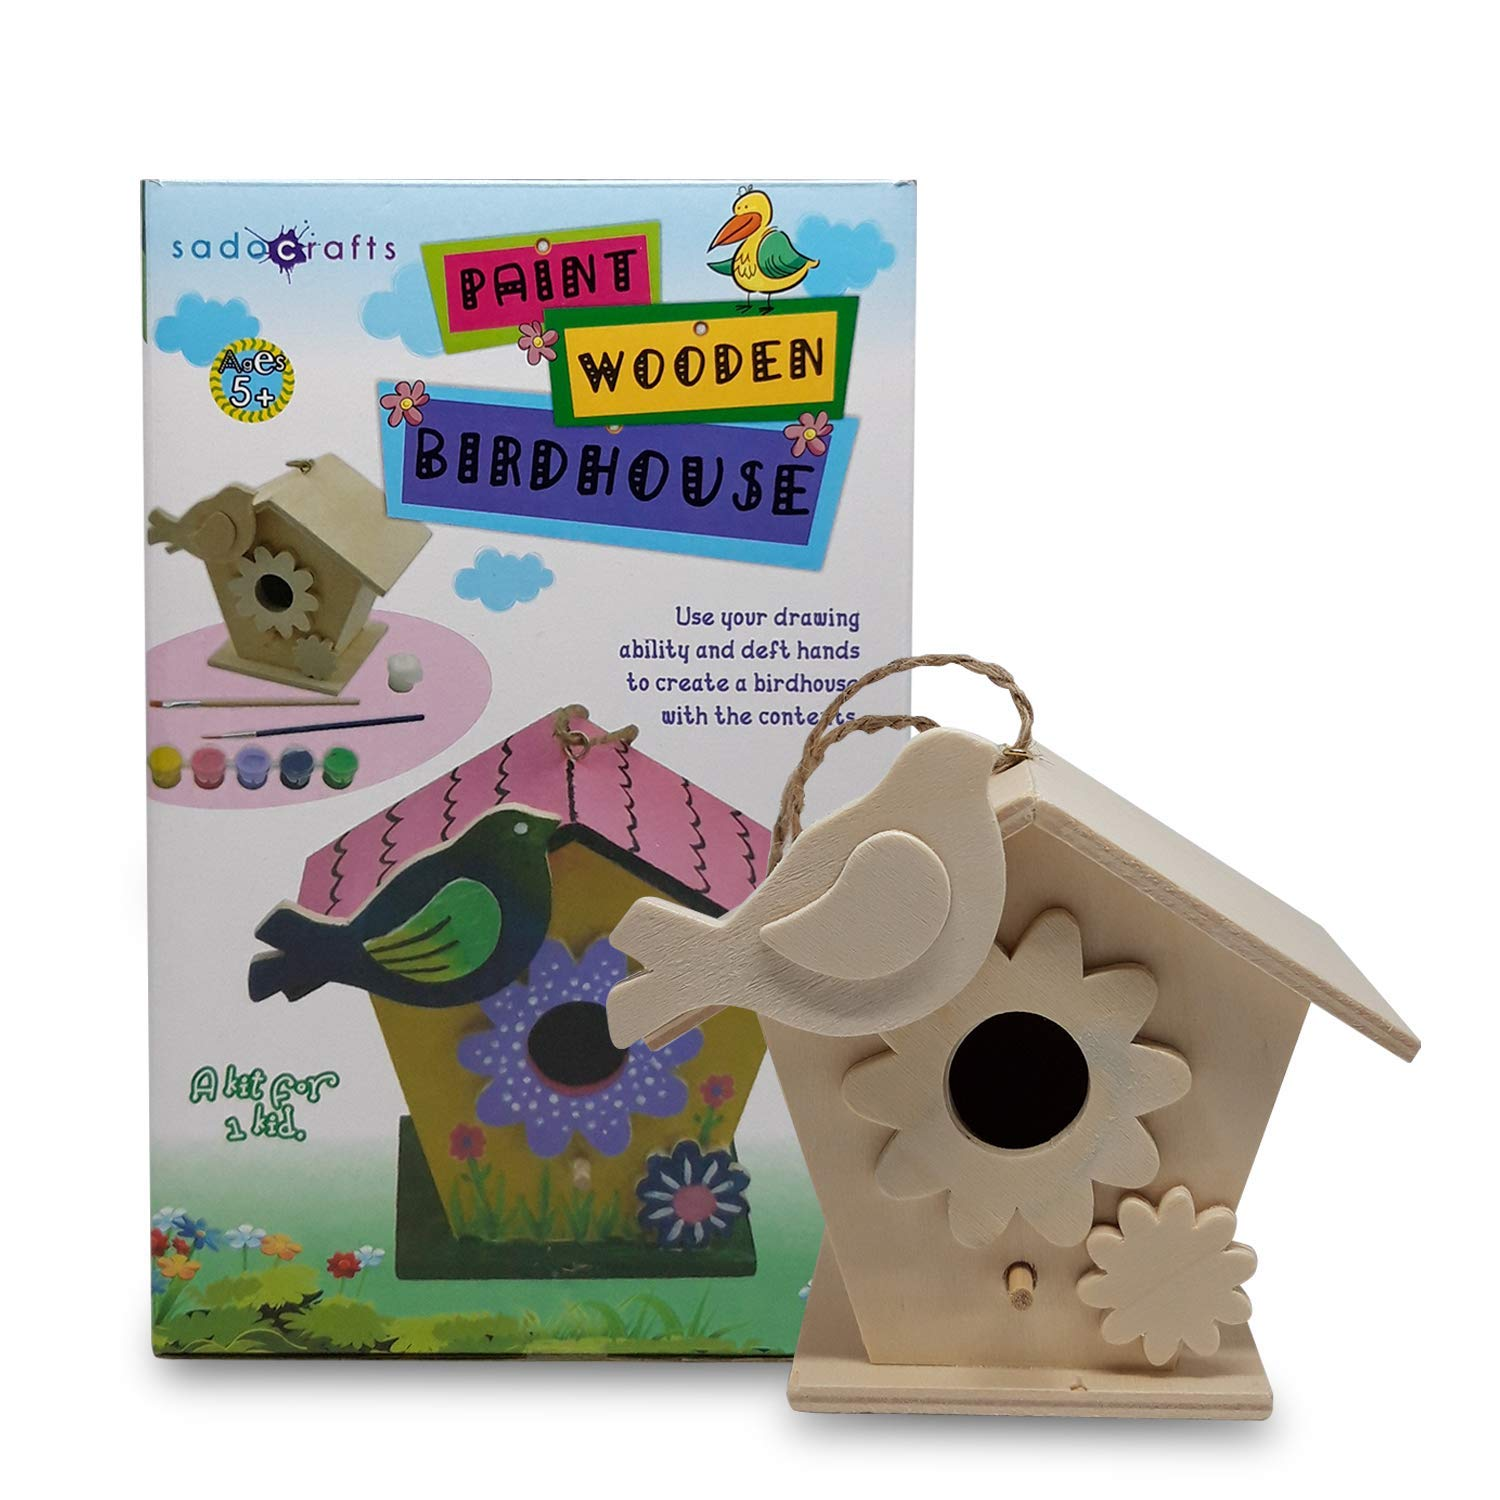 SadoCrafts Paint Your Own Birdhouse - Fun, Interactive, Educational, DIY Wood Arts and Crafts Kit for Kids